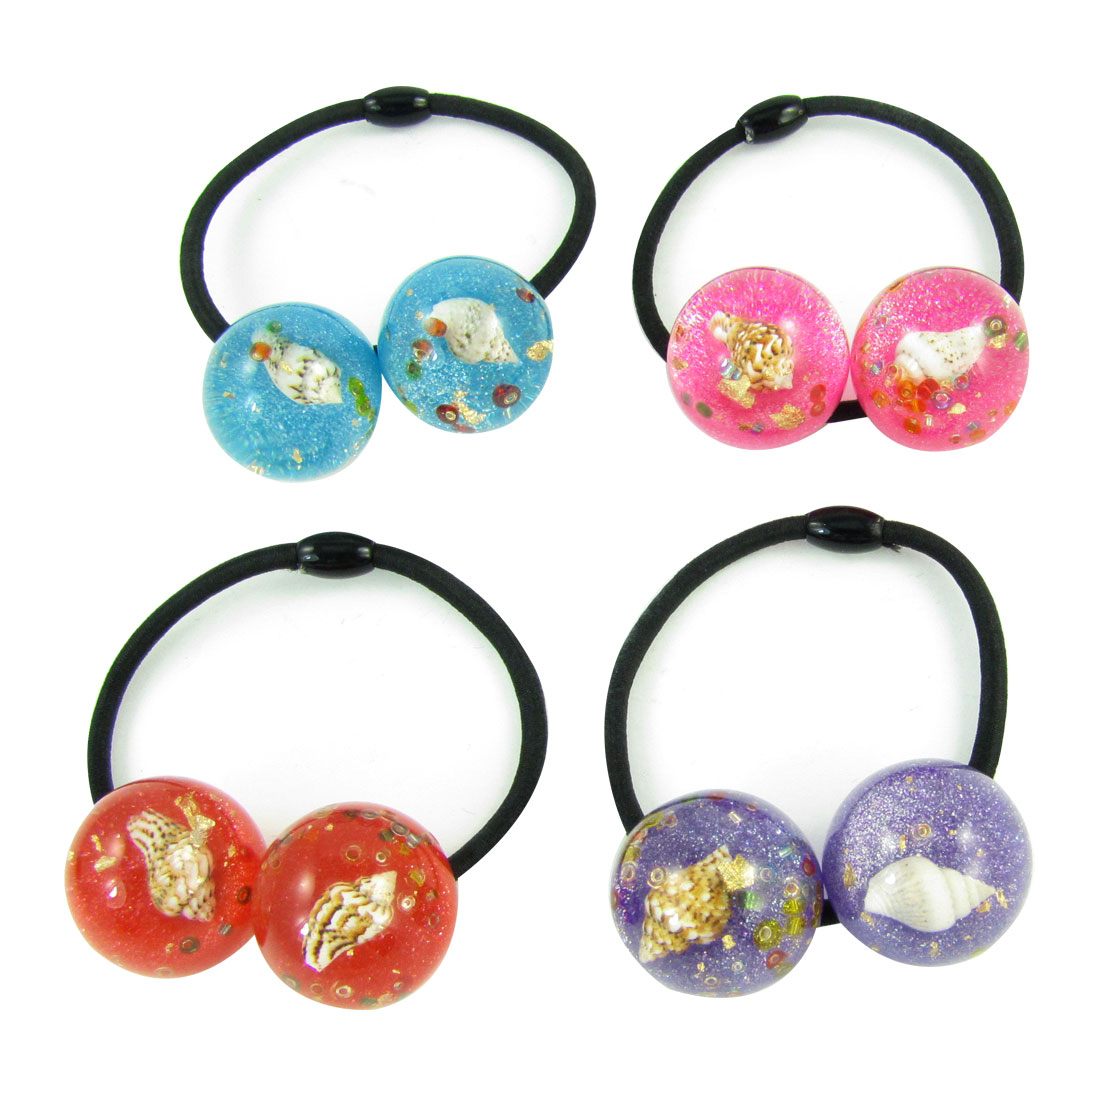 4pcs Girl Conch Inlaid Assorted Color Beads Decor Stretchy Hair Band Tie